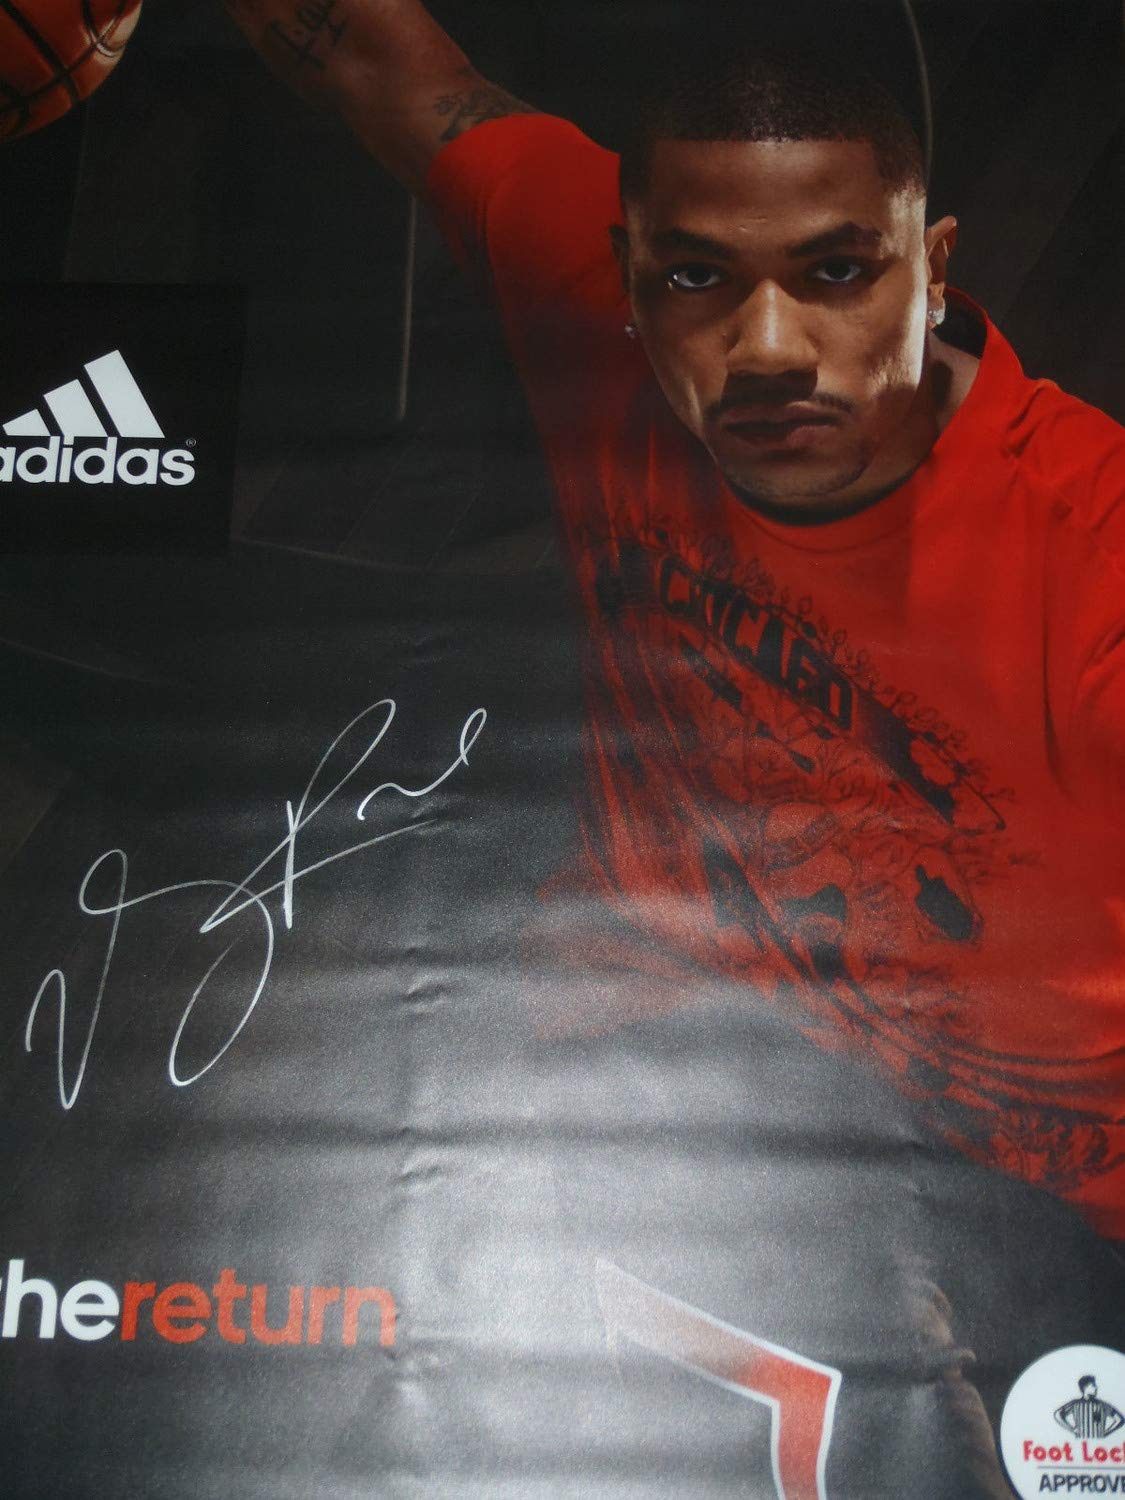 Very Rare Derrick Rose Autographed Signed Adidas Foot Locker Banner The Return Huge Auto PSA/DNA